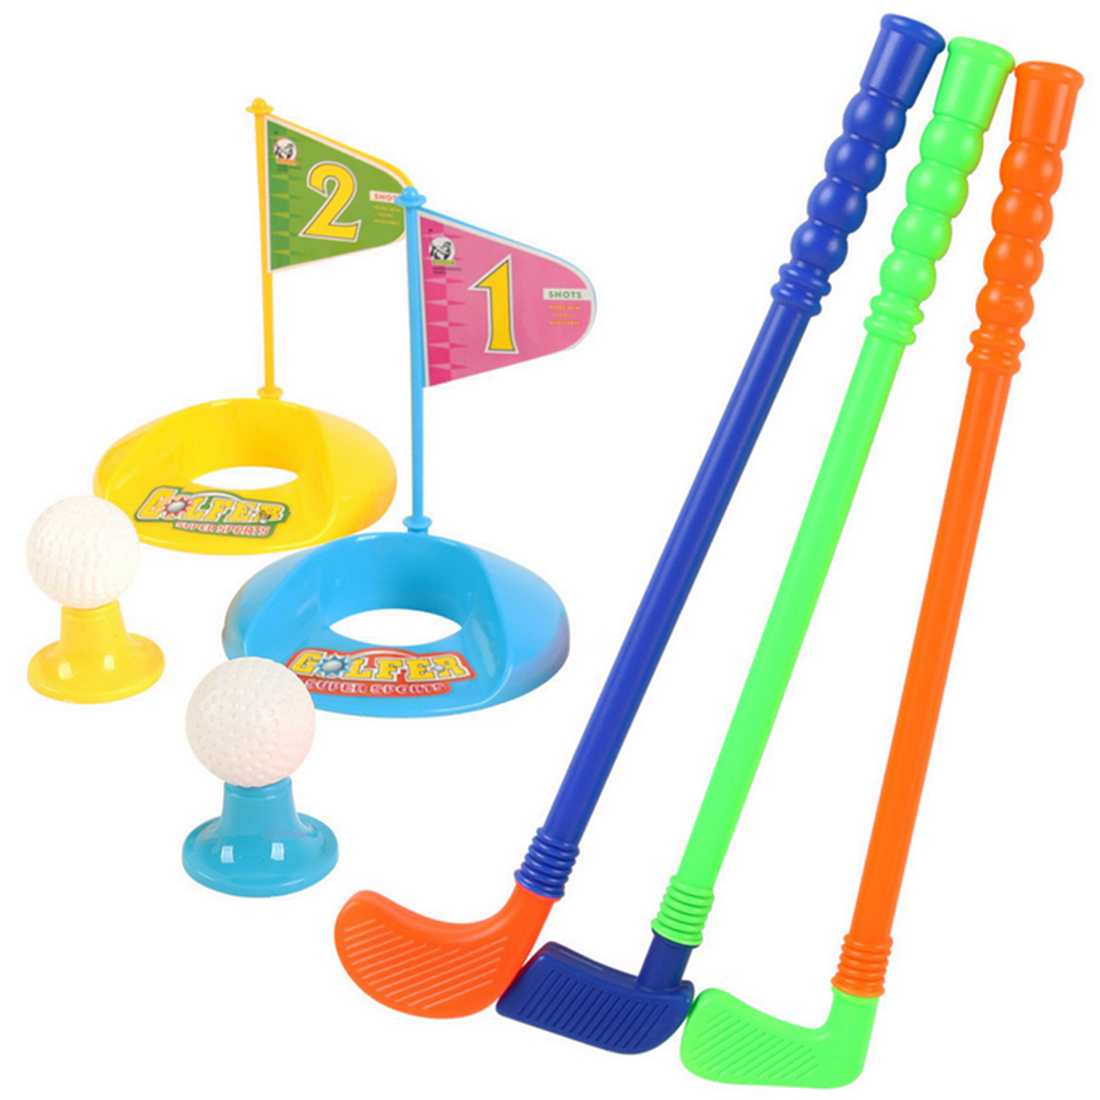 Set of Plastic 3 Golf Putter Club 2 Balls 2 Putting Cup 2 Flags 2 Tees Kids Toy Color Random by